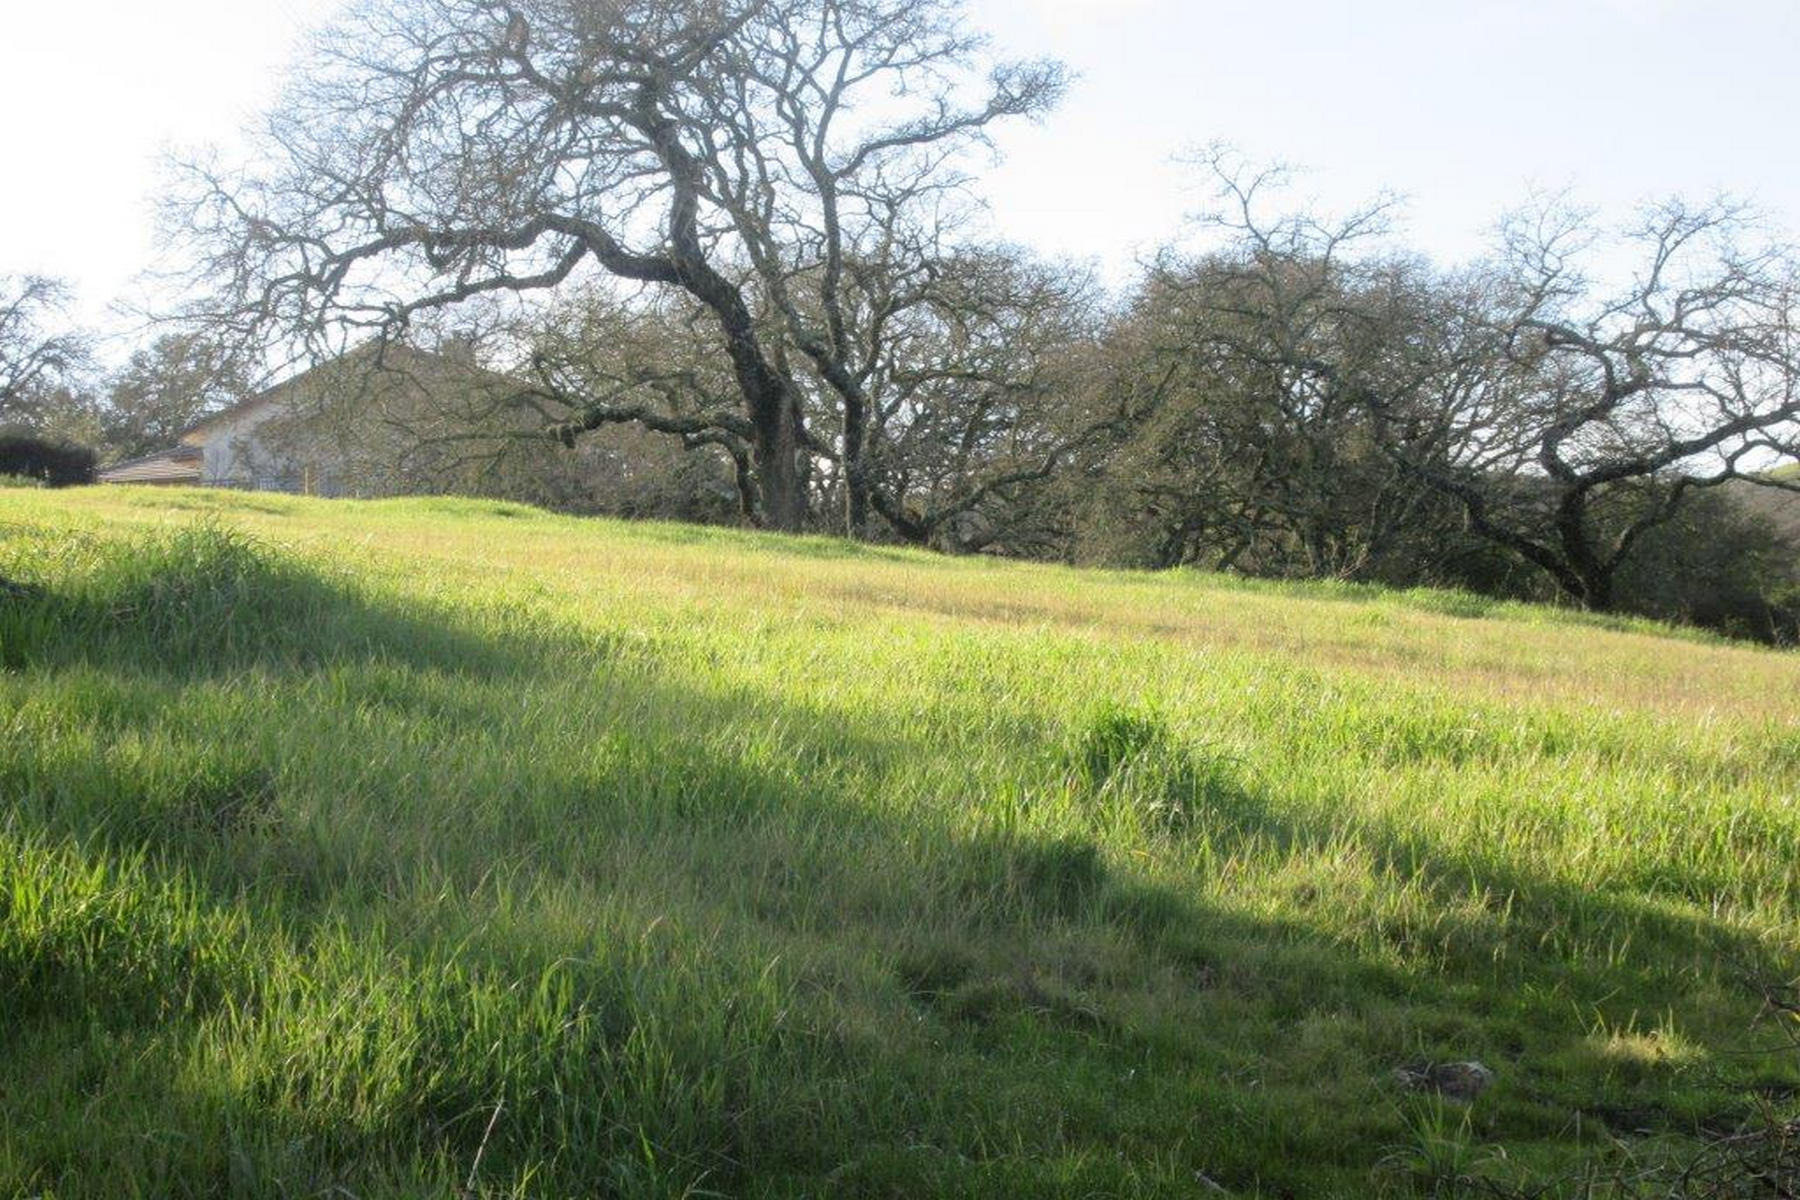 Land for Sale at 7.5+/- Acre Parcel on the lovely Westside 14805 El Monte Road Atascadero, California 93422 United States